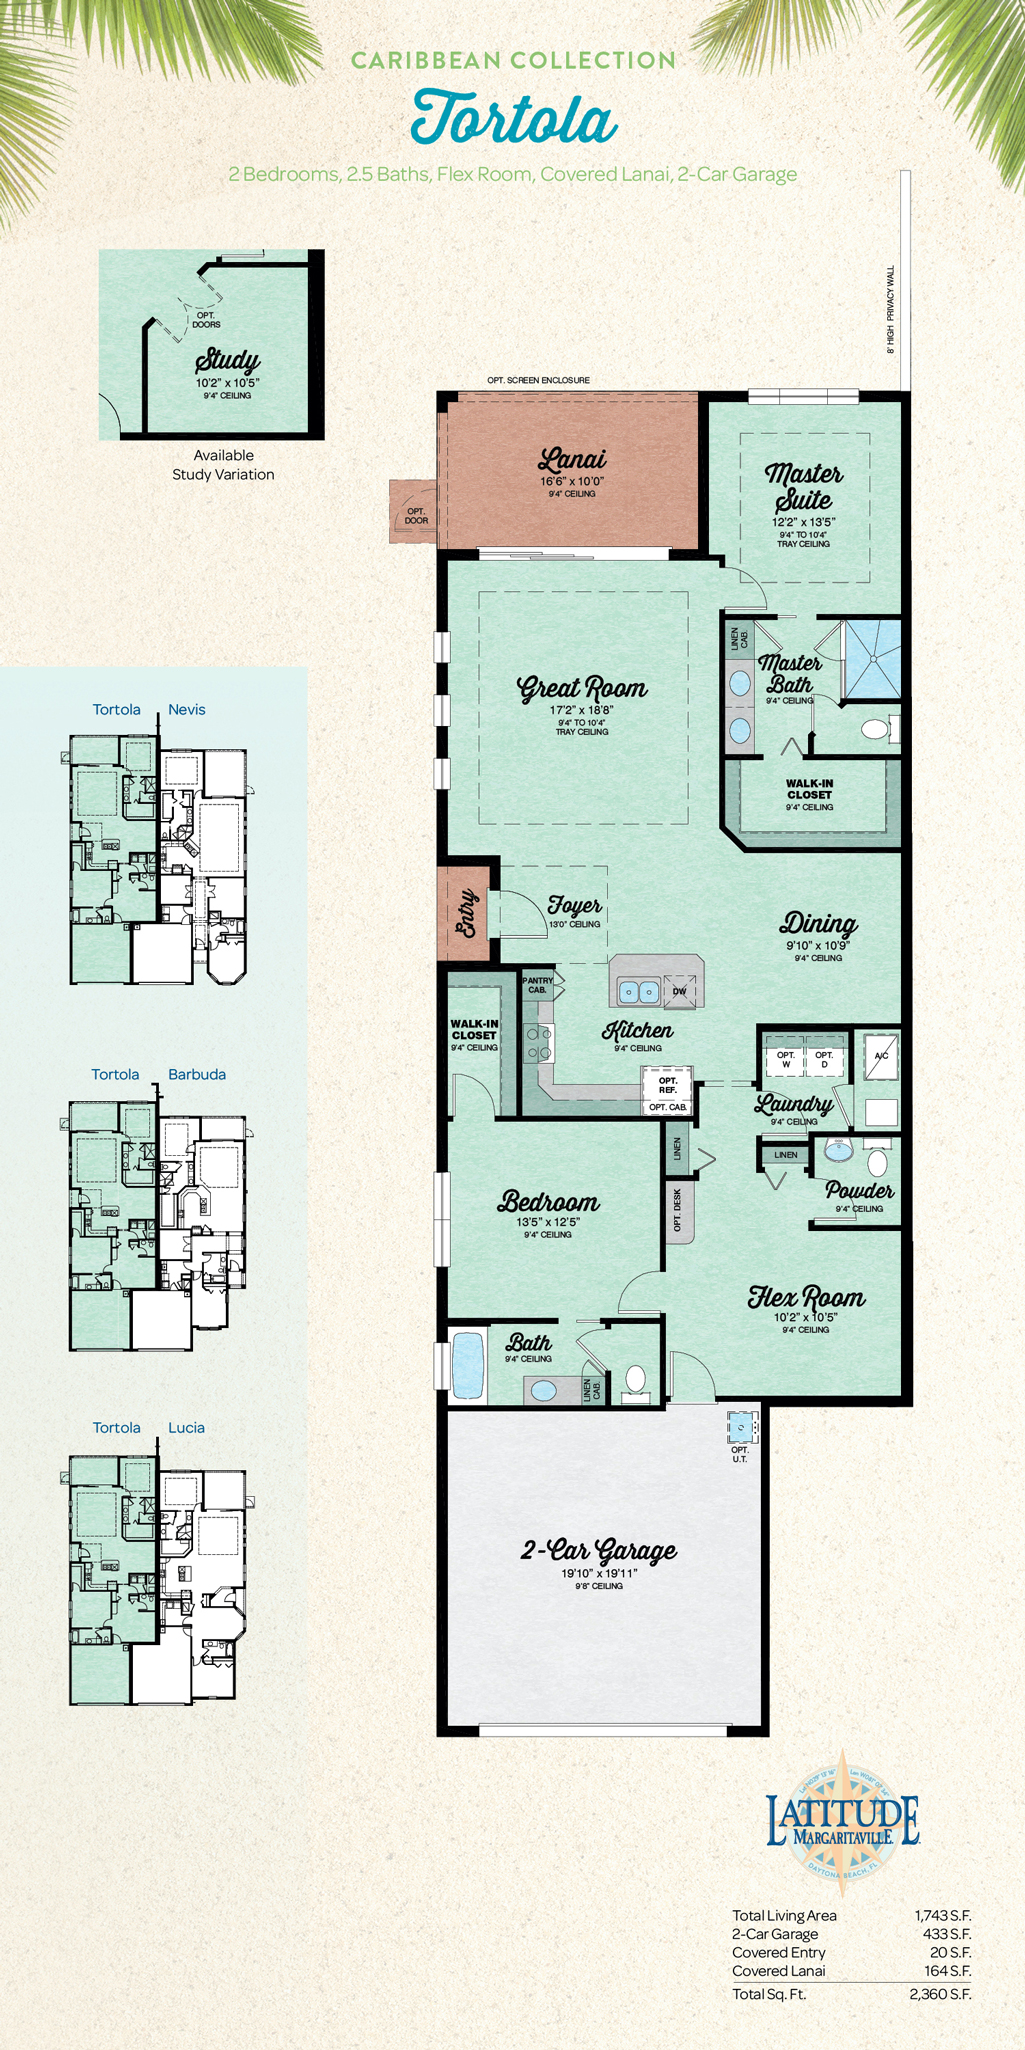 A Floor Plans image. Visually impaired customers please call for assistance